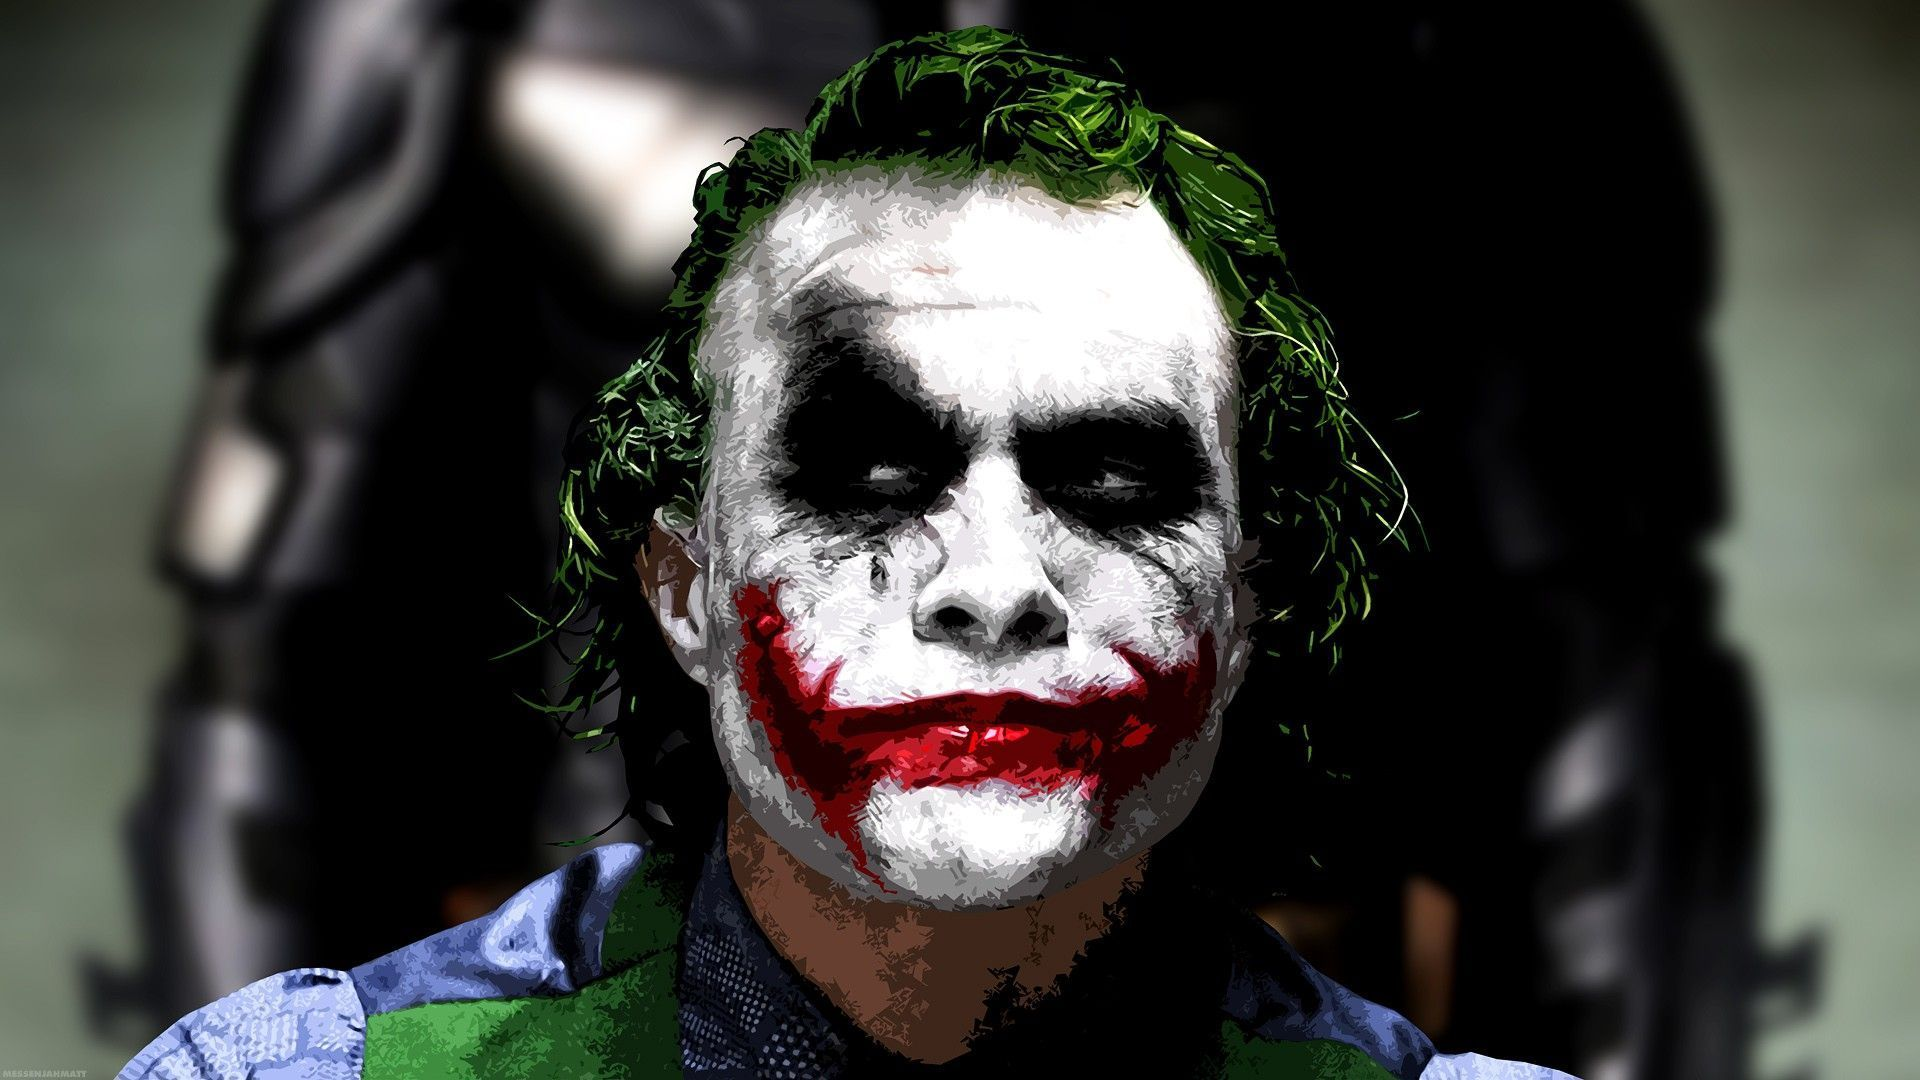 Heath Ledger Joker Wallpapers Wallpaper Cave Joker